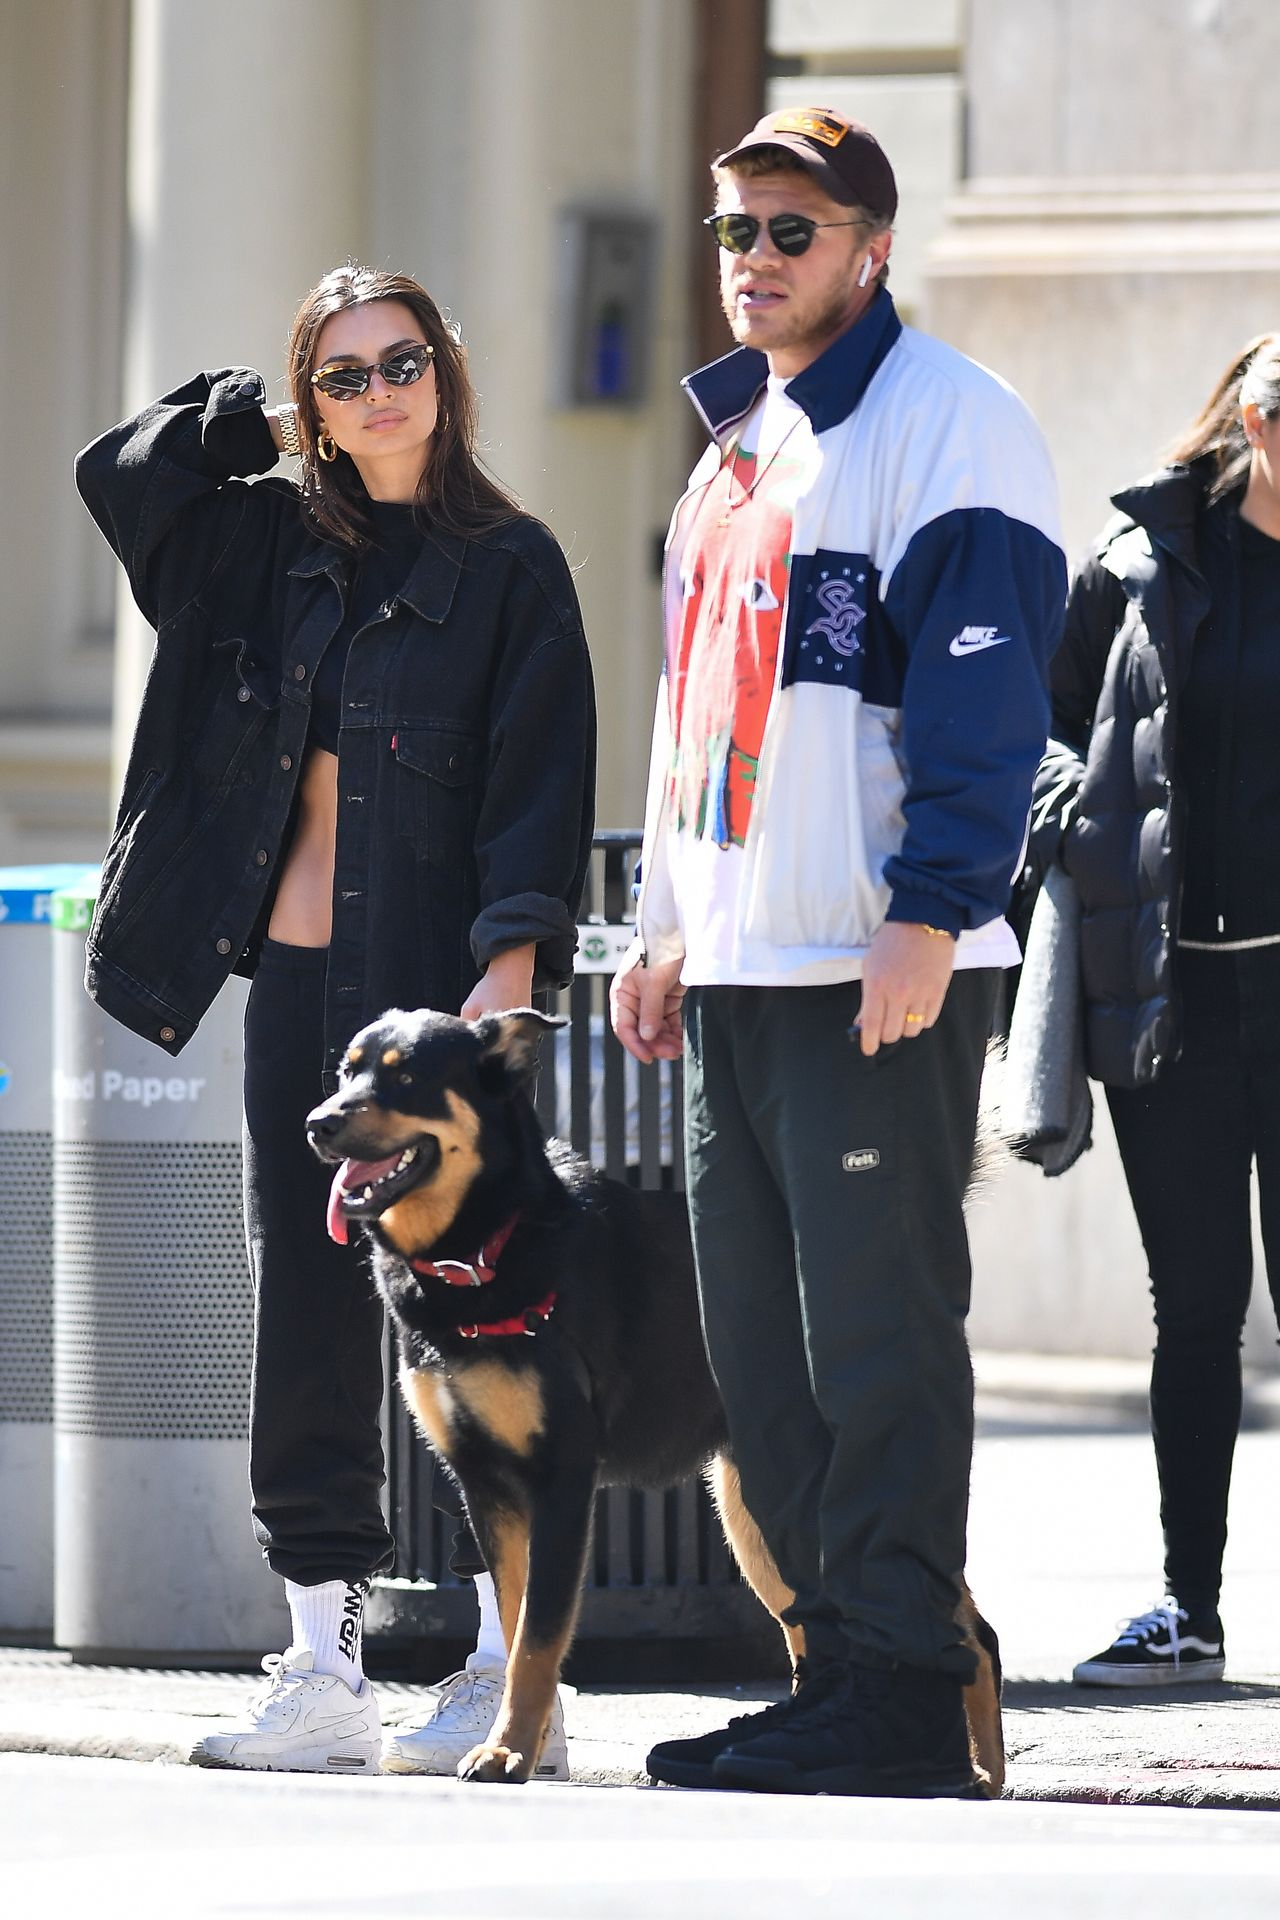 Emily Ratajkowski Walks With Her Dog Colombo In Nyc 0027